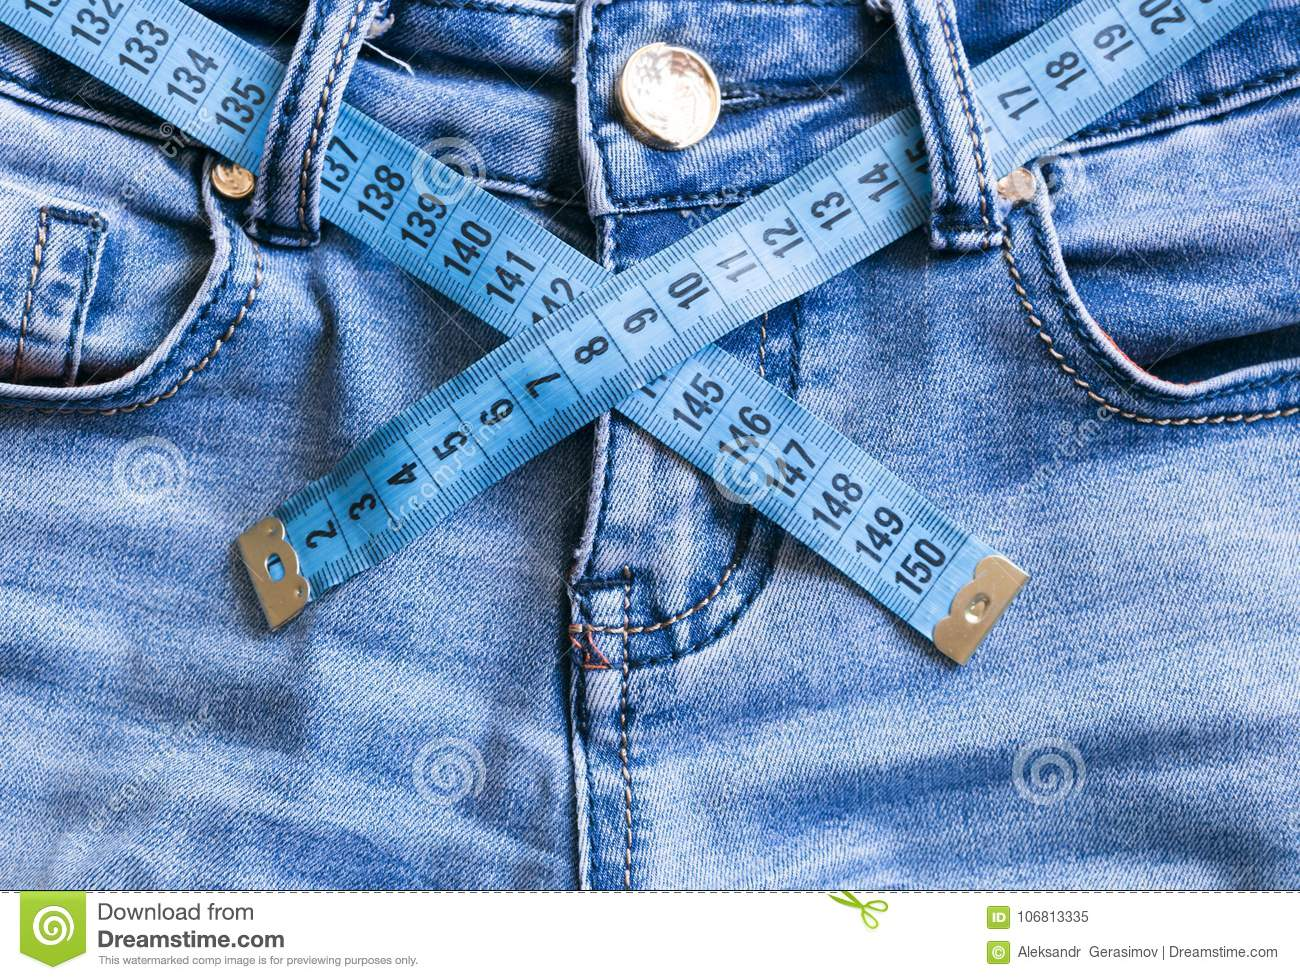 Close up jeans and soft meter waist measurement.